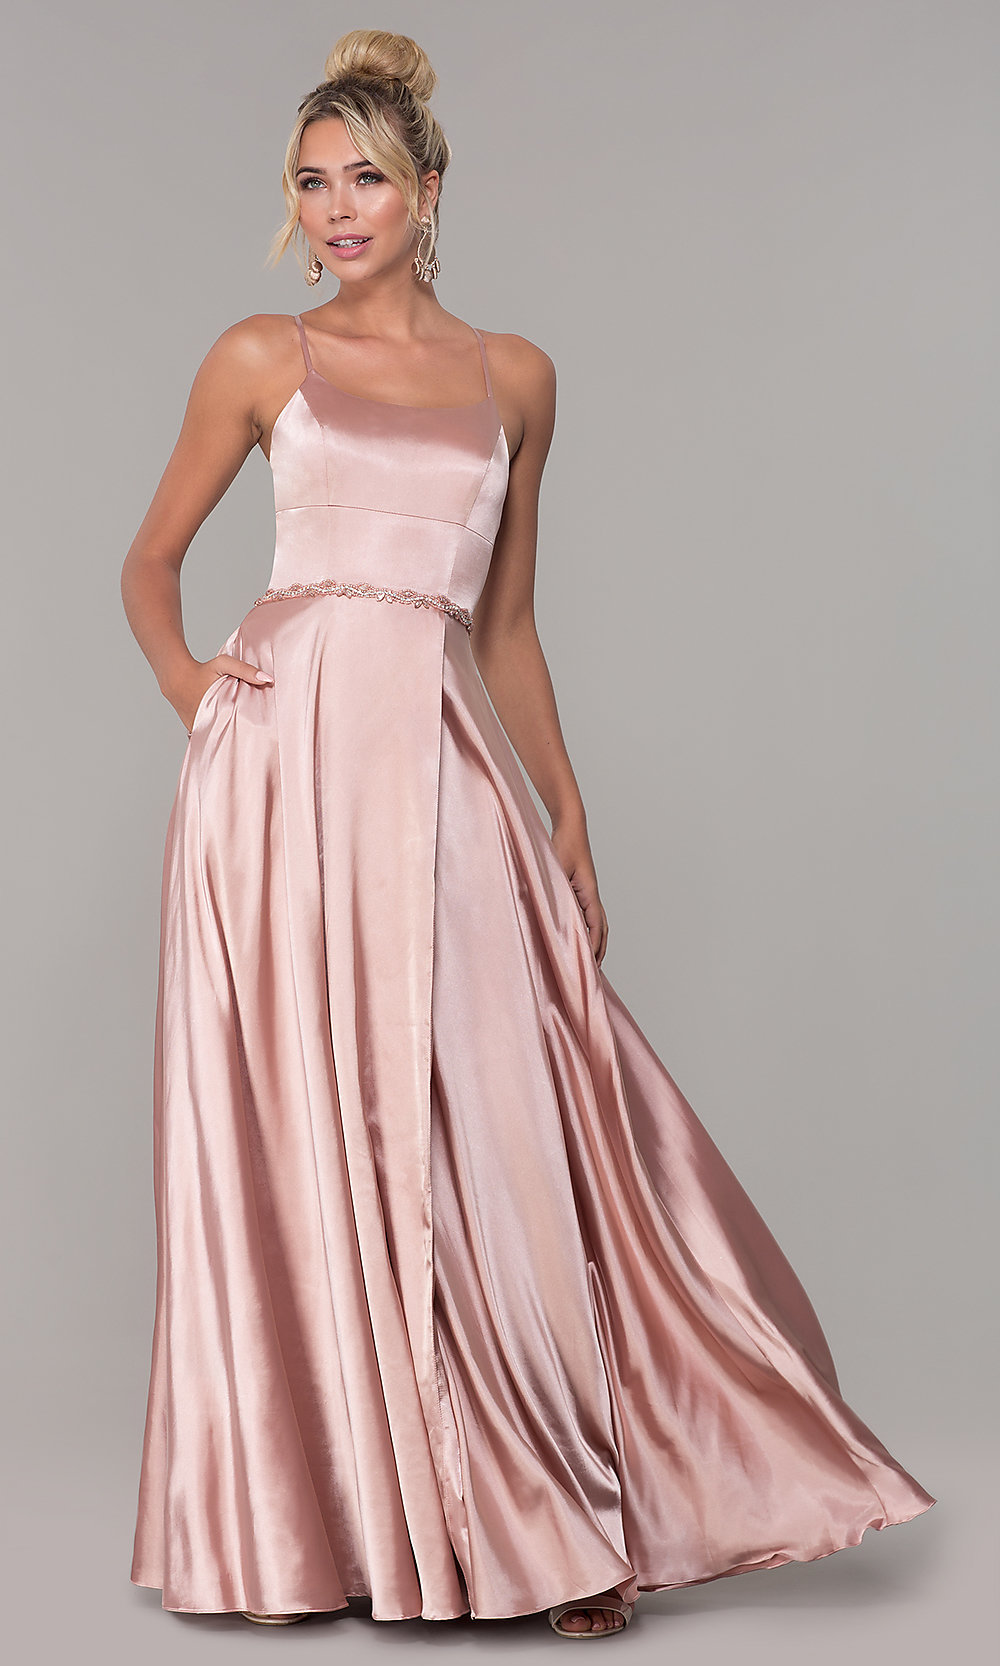 dress satin prom slit dresses gold formal rose wrap pockets faux promgirl 2652 dq shipping